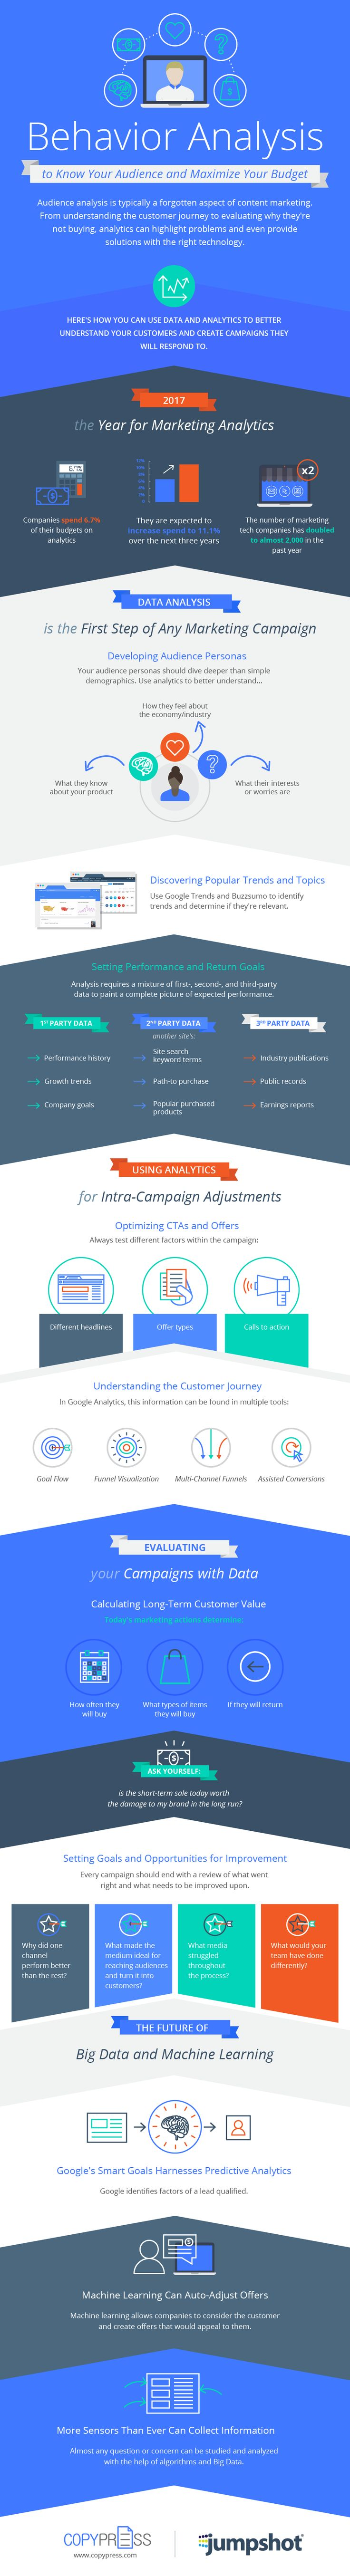 How Behavior Analysis Can Help You Increase Marketing ROI #Infographic #Marketing